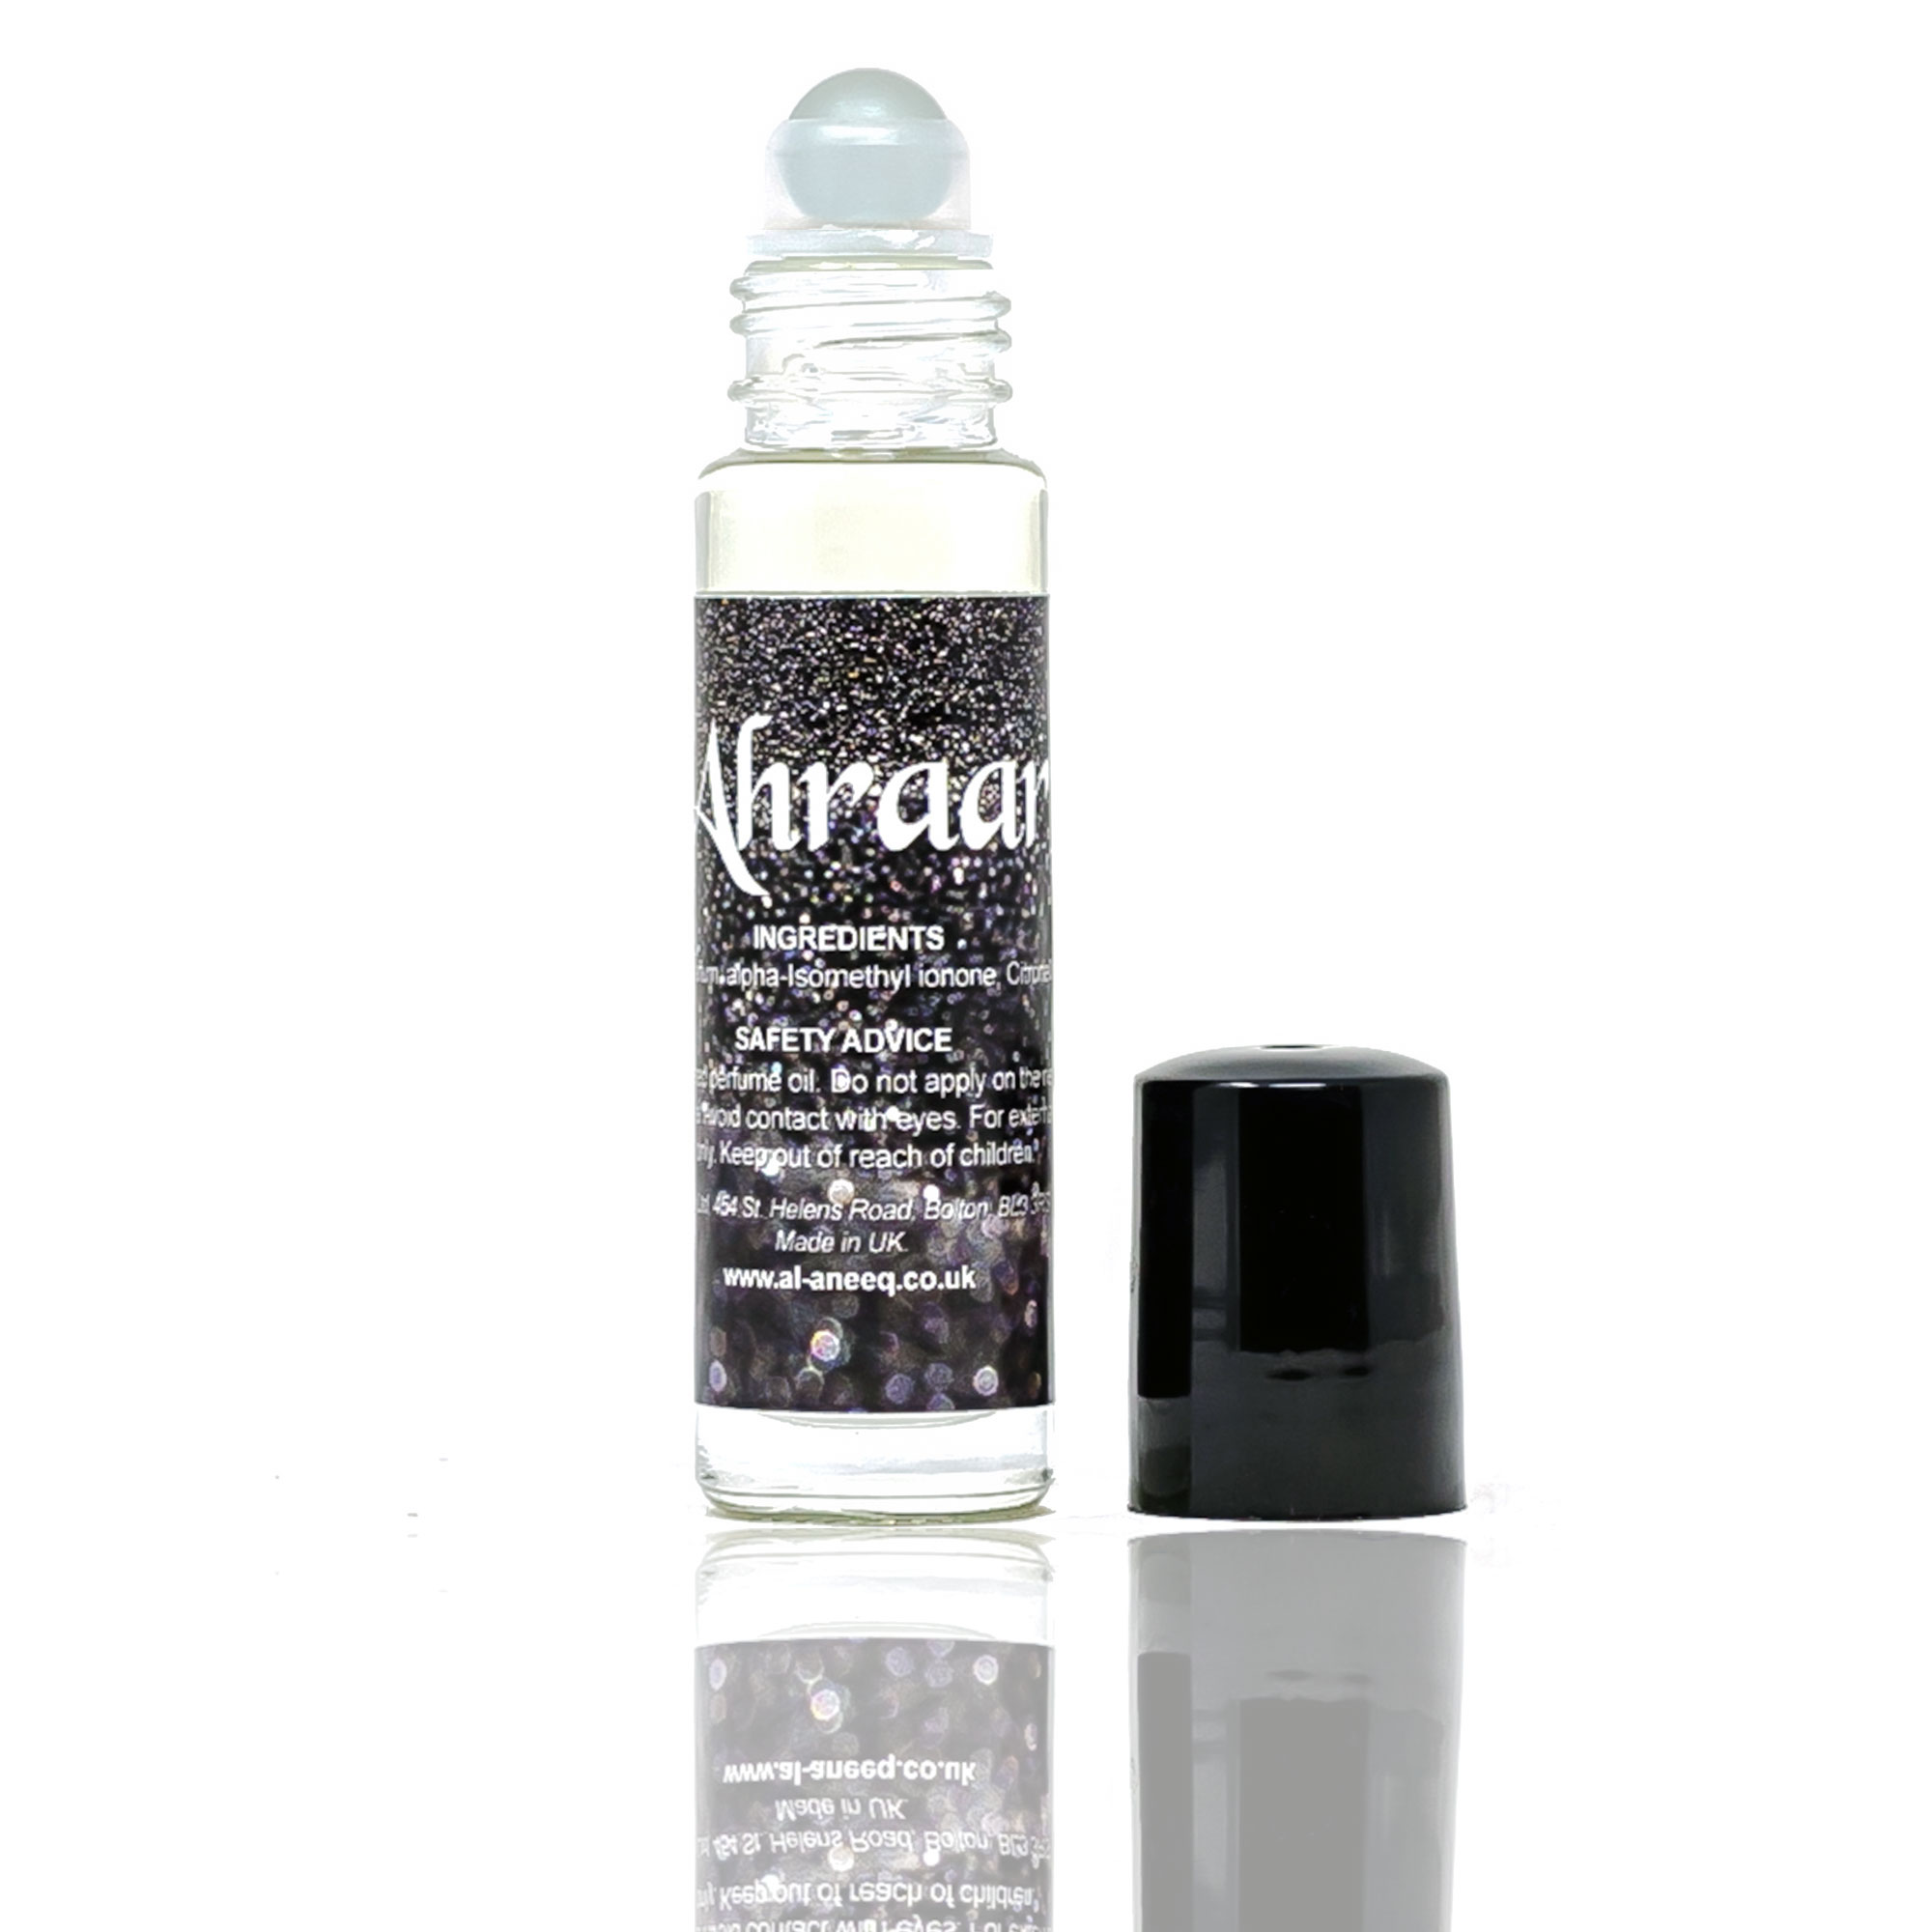 Ahraar Scented Fragrance by Al Aneeq